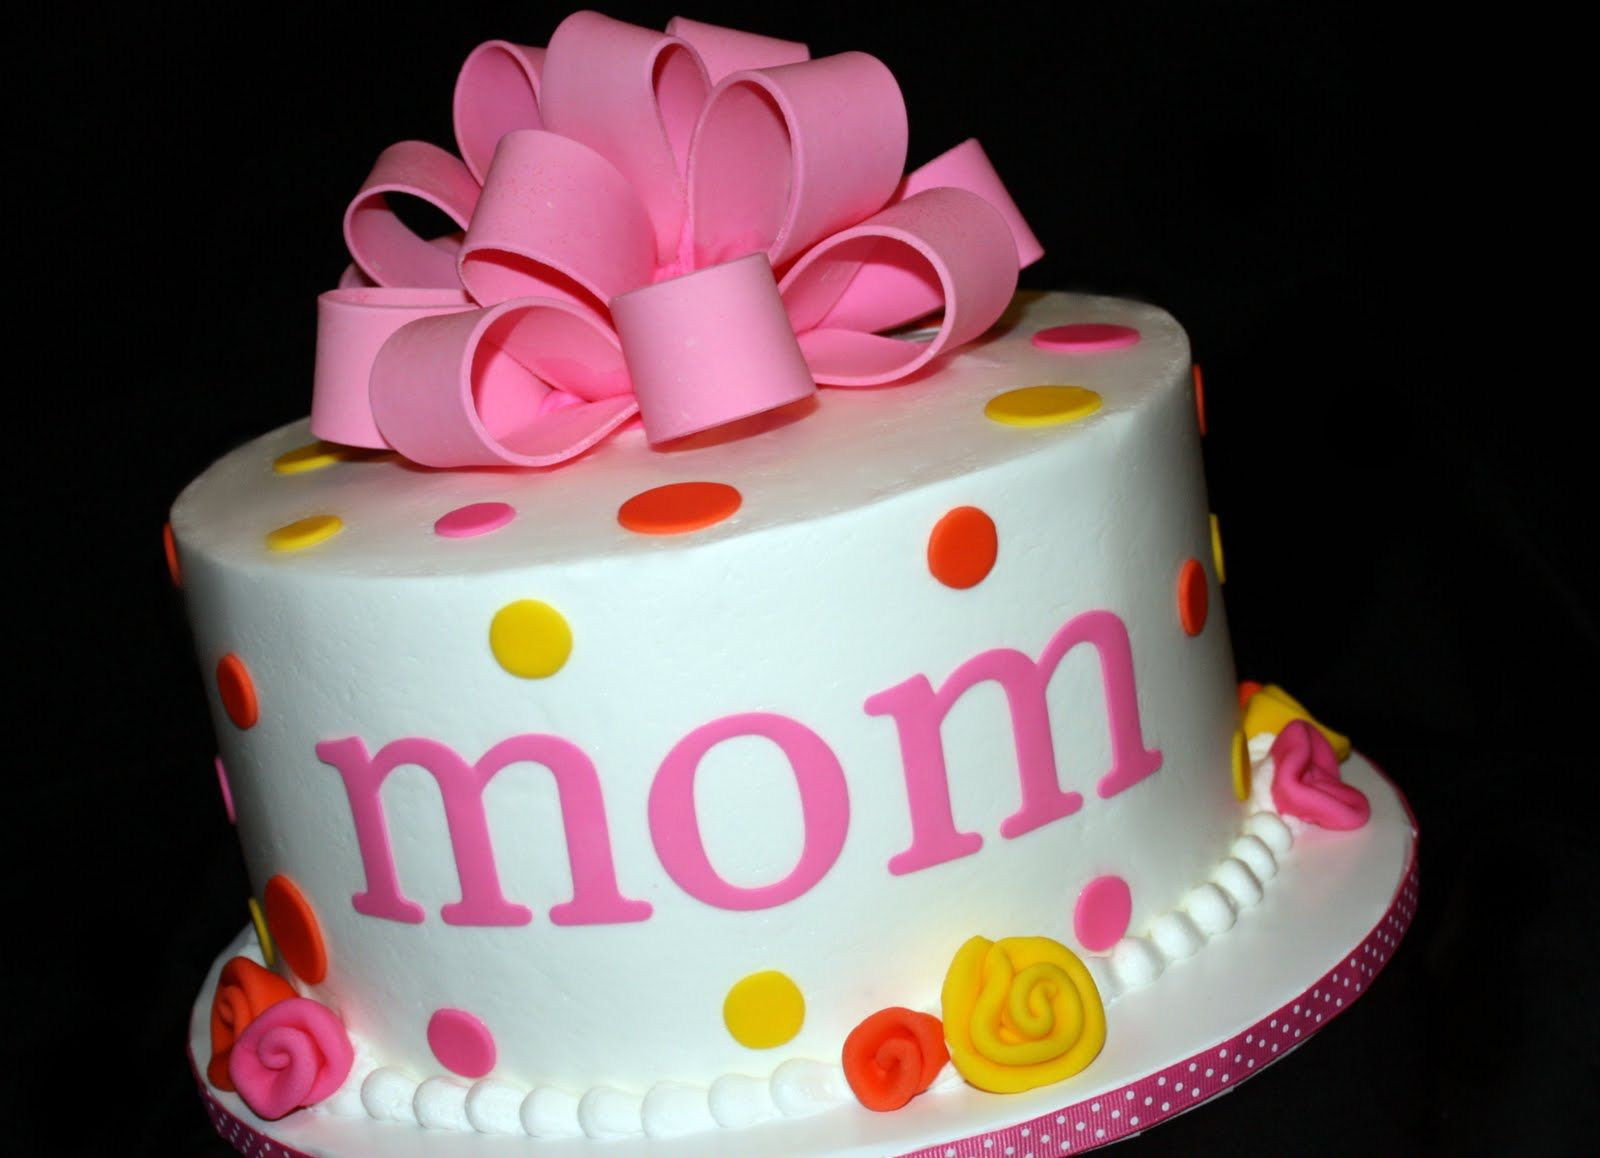 Cake Pictures For Mom : fun cakes Mom Birthday Cake fun cakes Pinterest ...